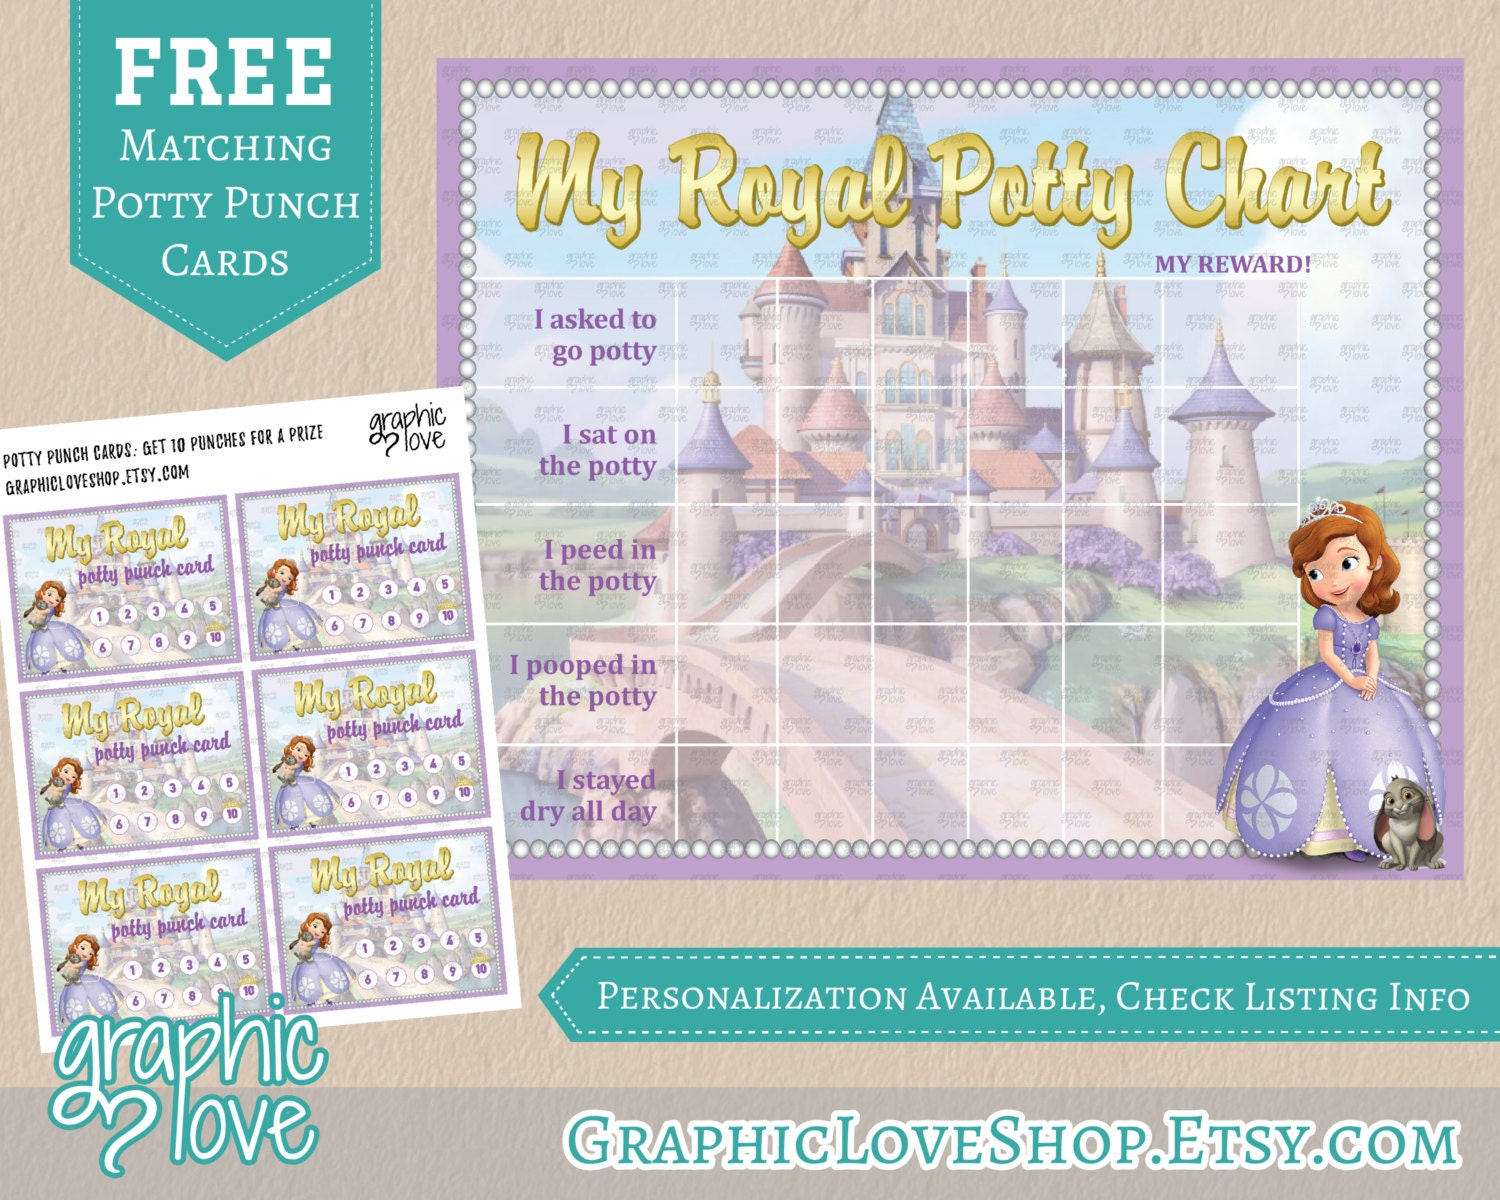 potty training charts graphic love shop printable sofia the first royal potty training chart punch cards high resolution jpg